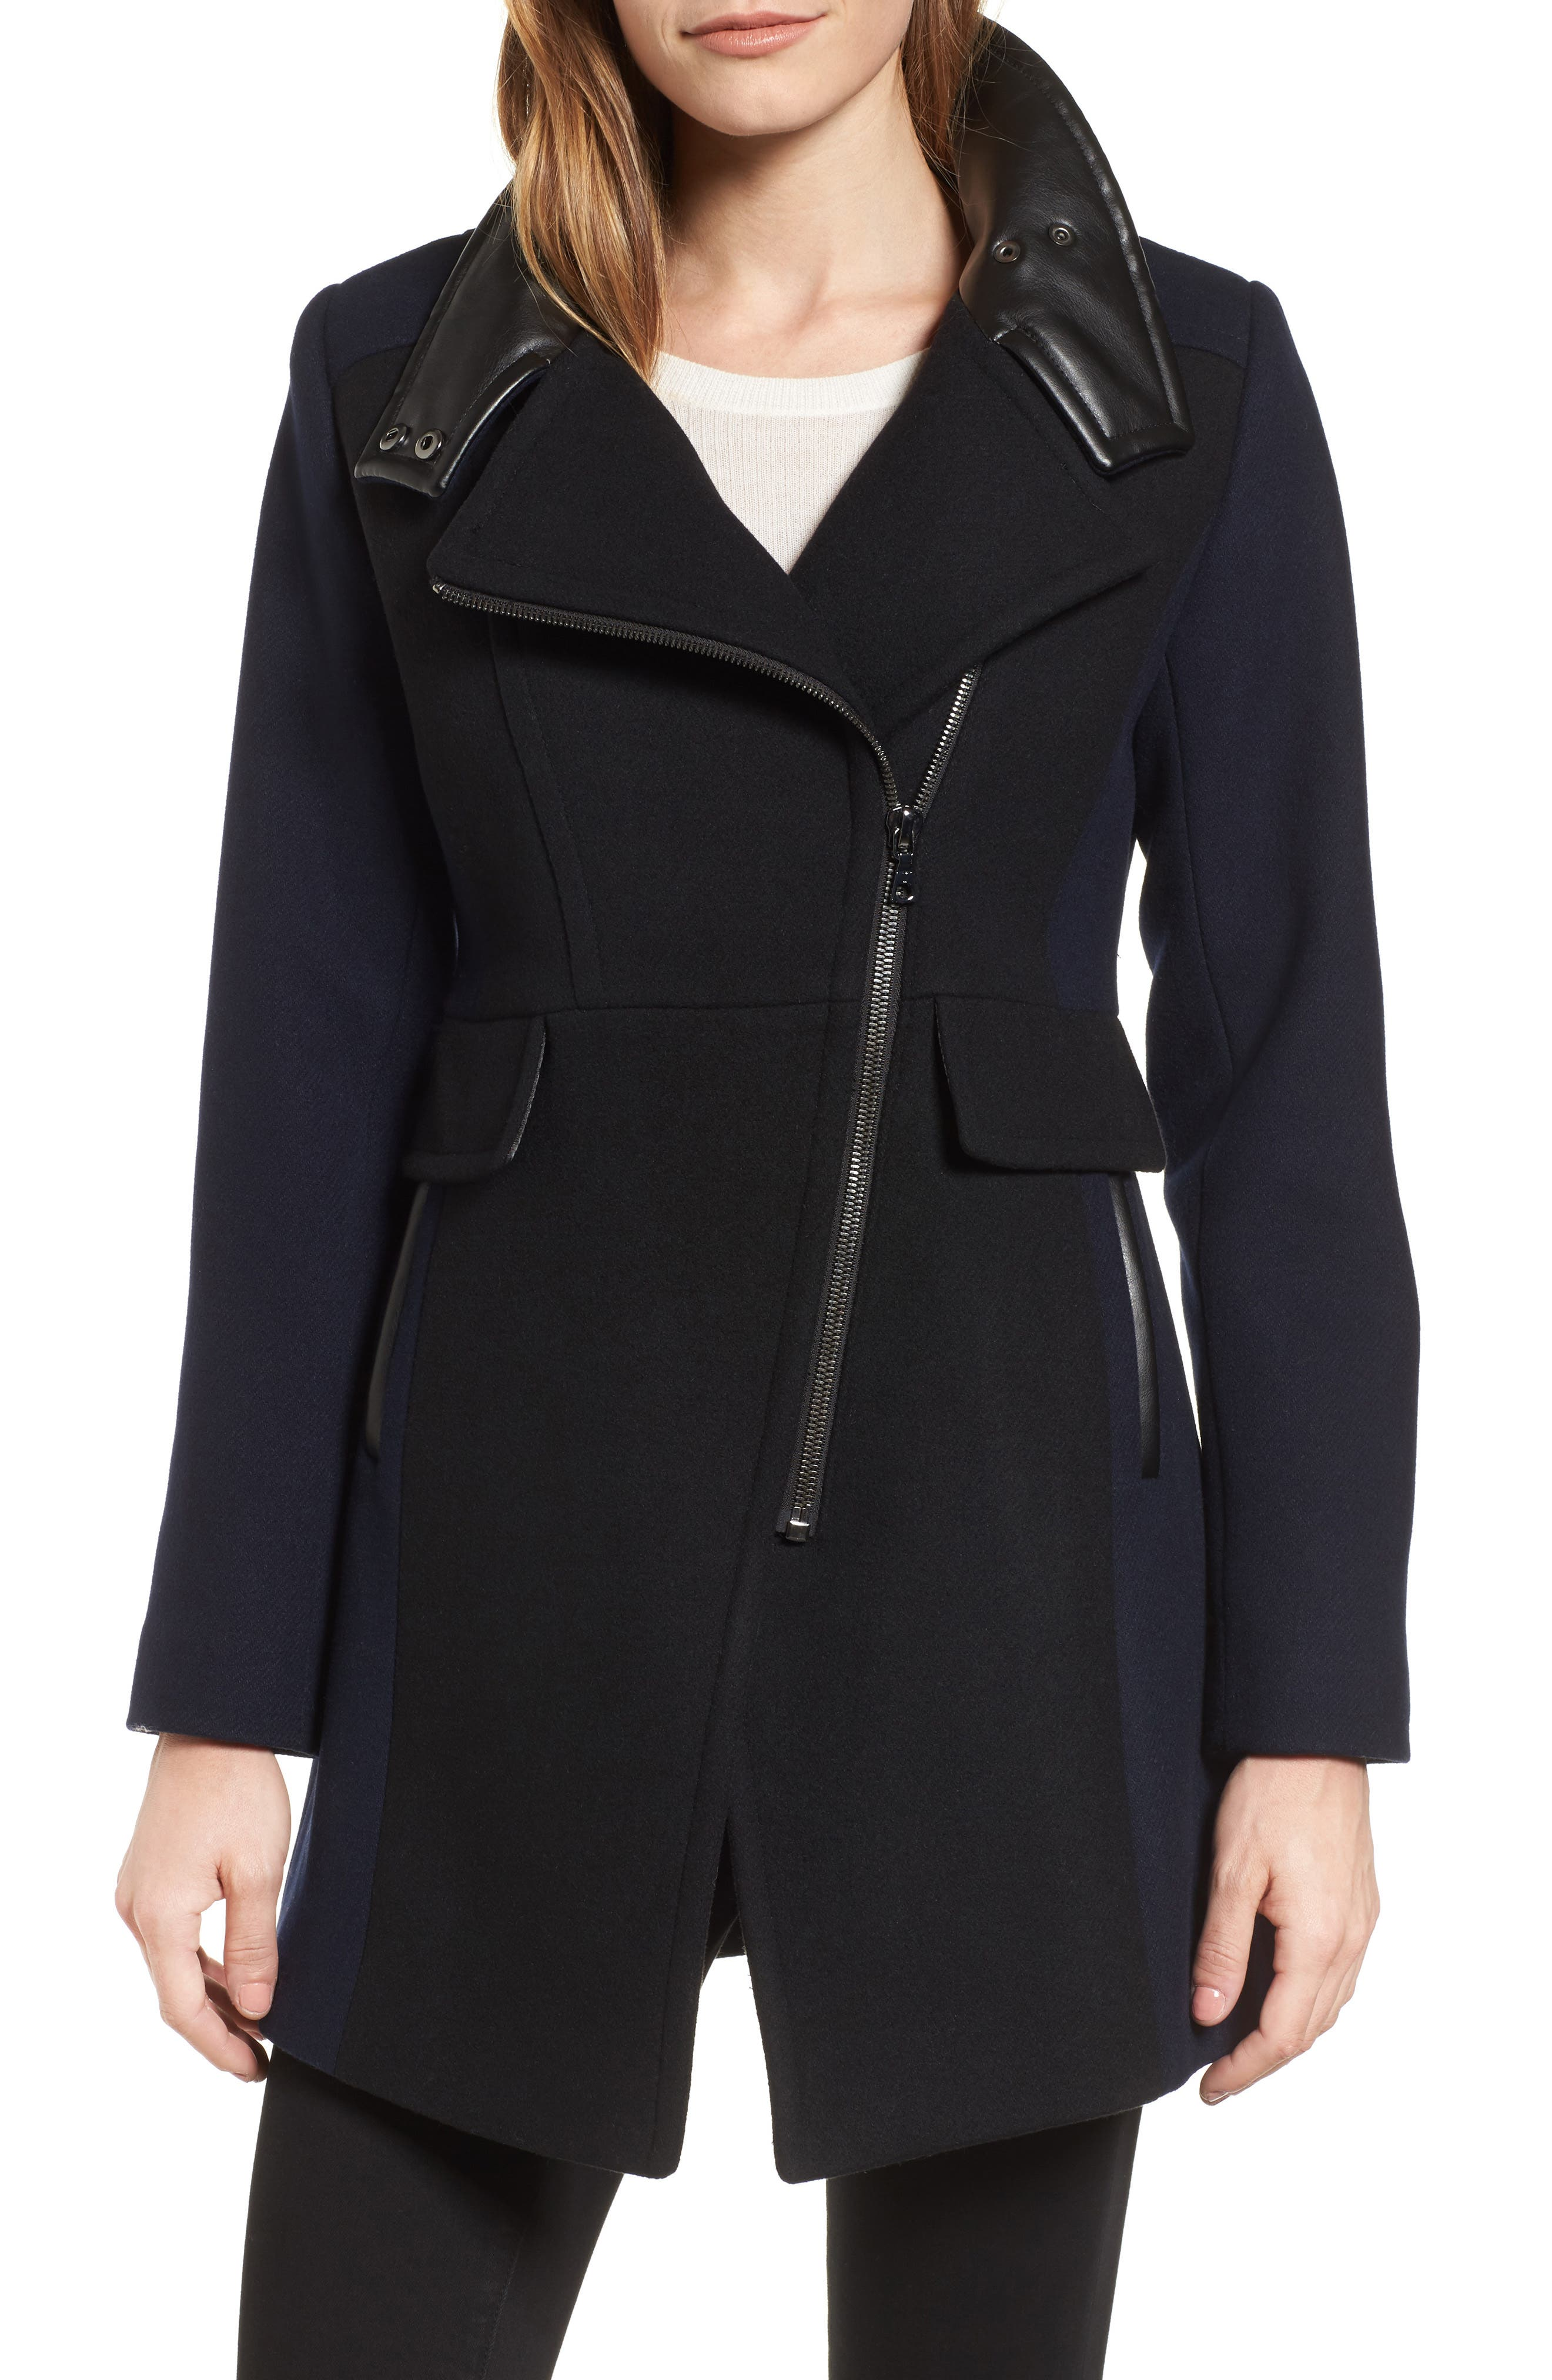 Alternate Image 1 Selected - Trina Turk Eleanor Leather Trim Wool Blend Coat